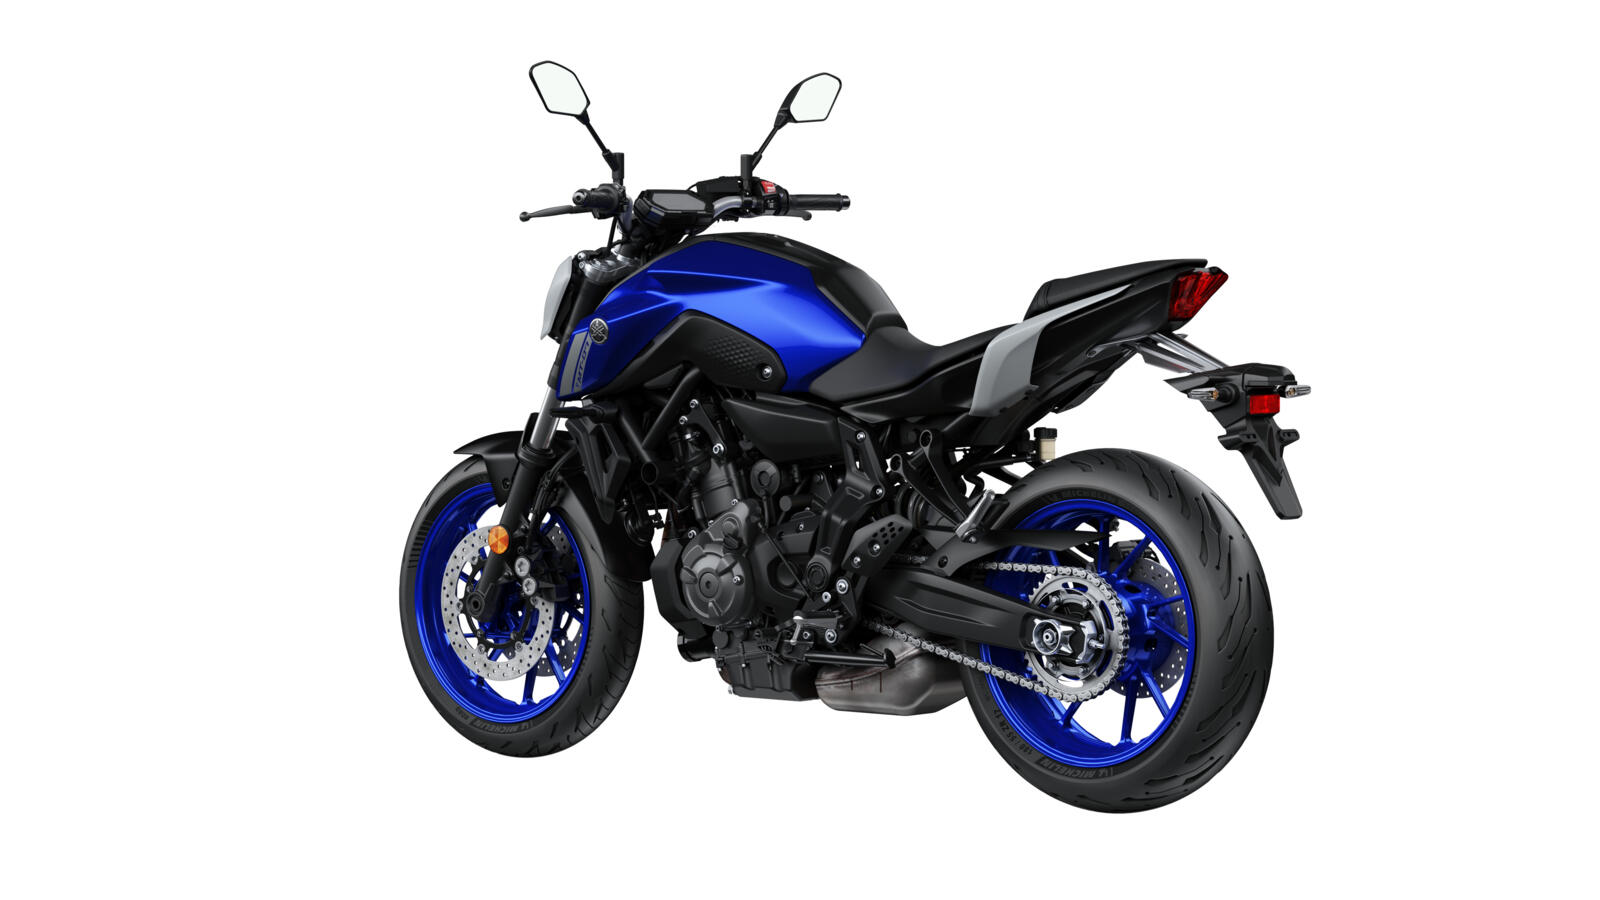 Yamaha MT-07 naked bike